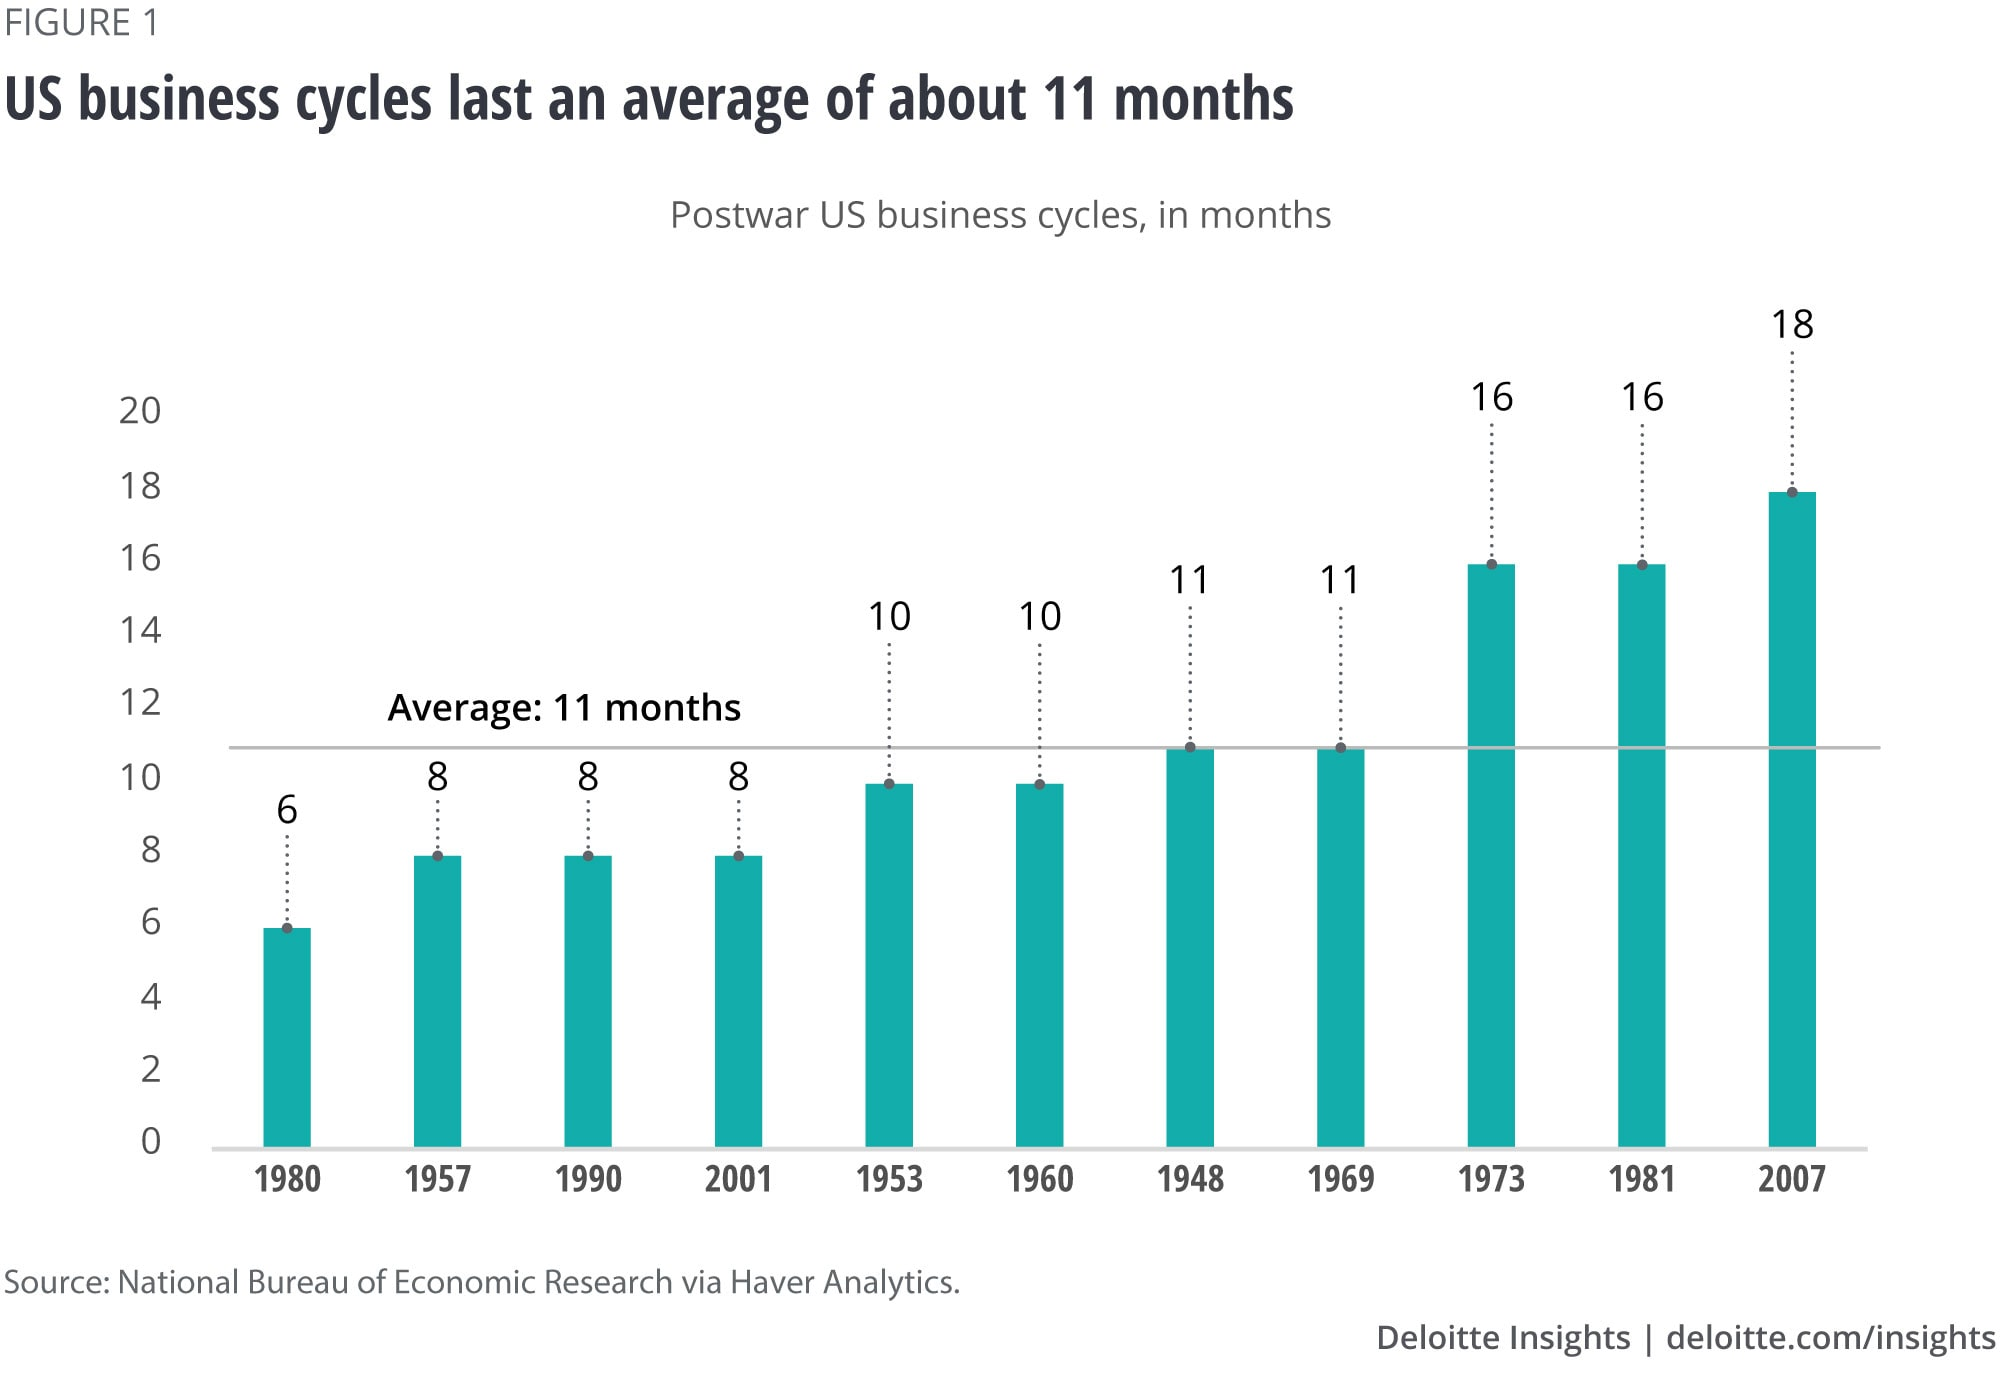 US business cycles last an average of about 11 months